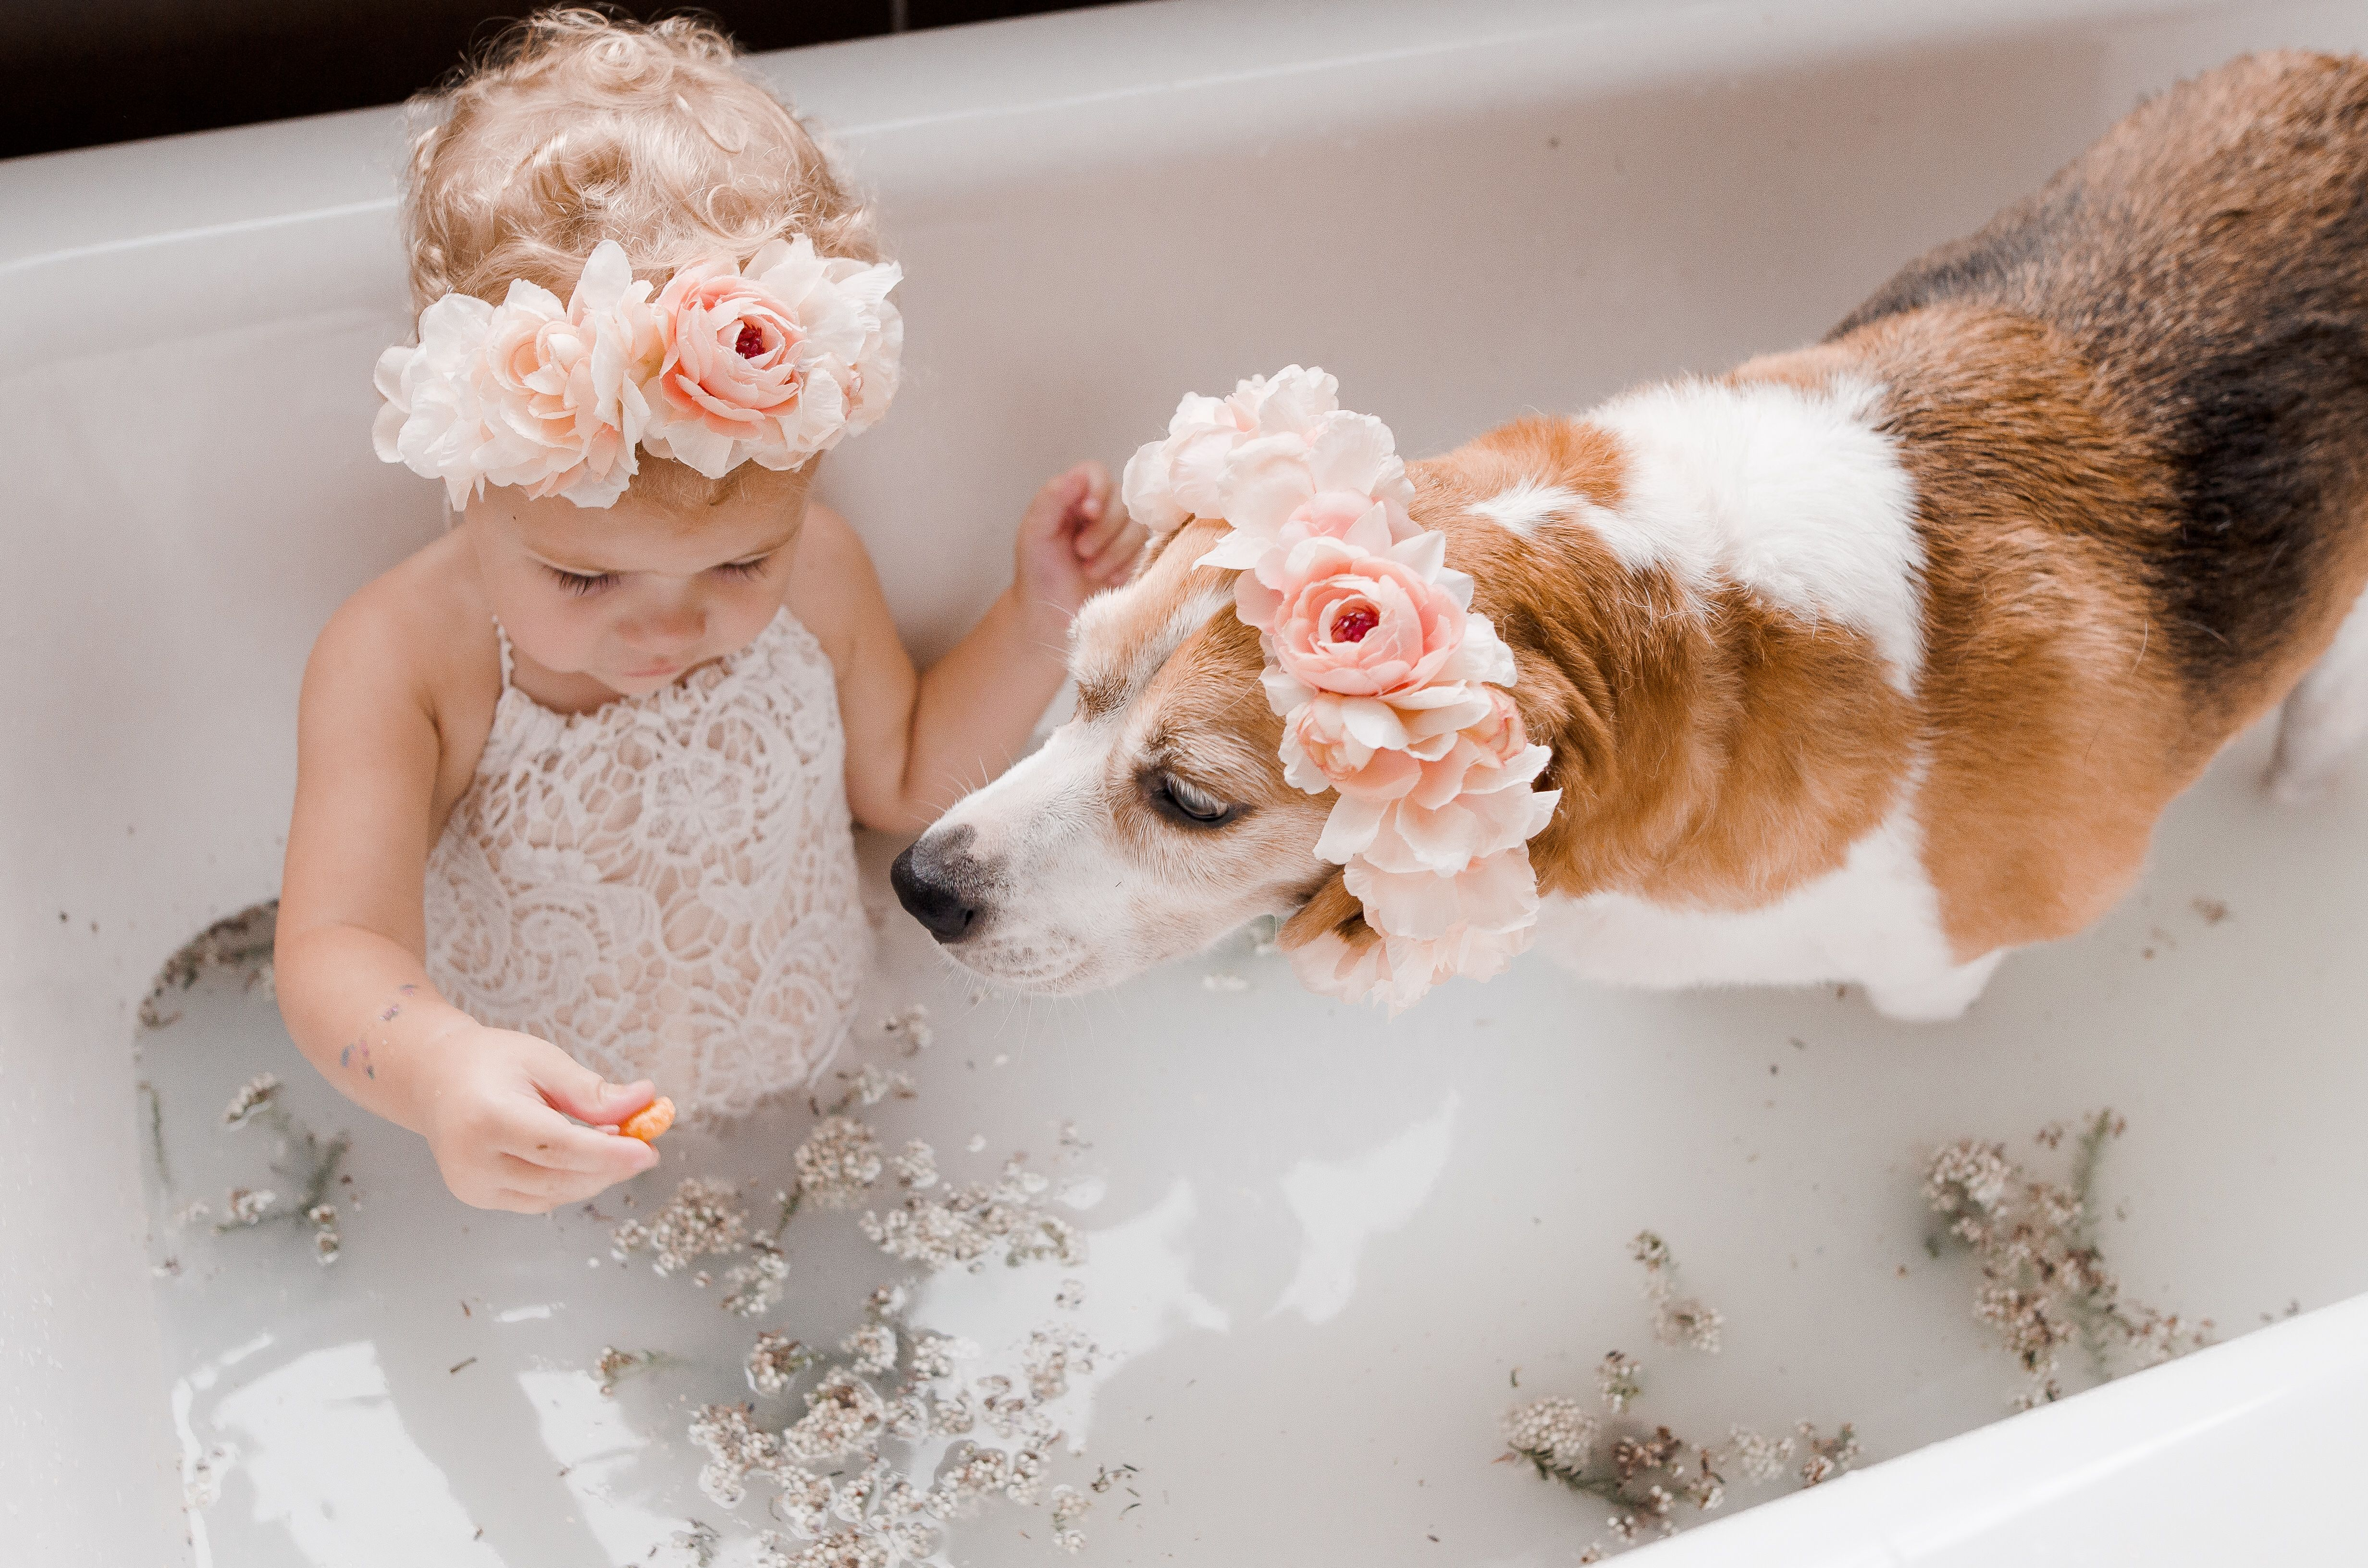 Baby And Dog Milk Bath Puppy Beagle Milkbath Dogbath Baby